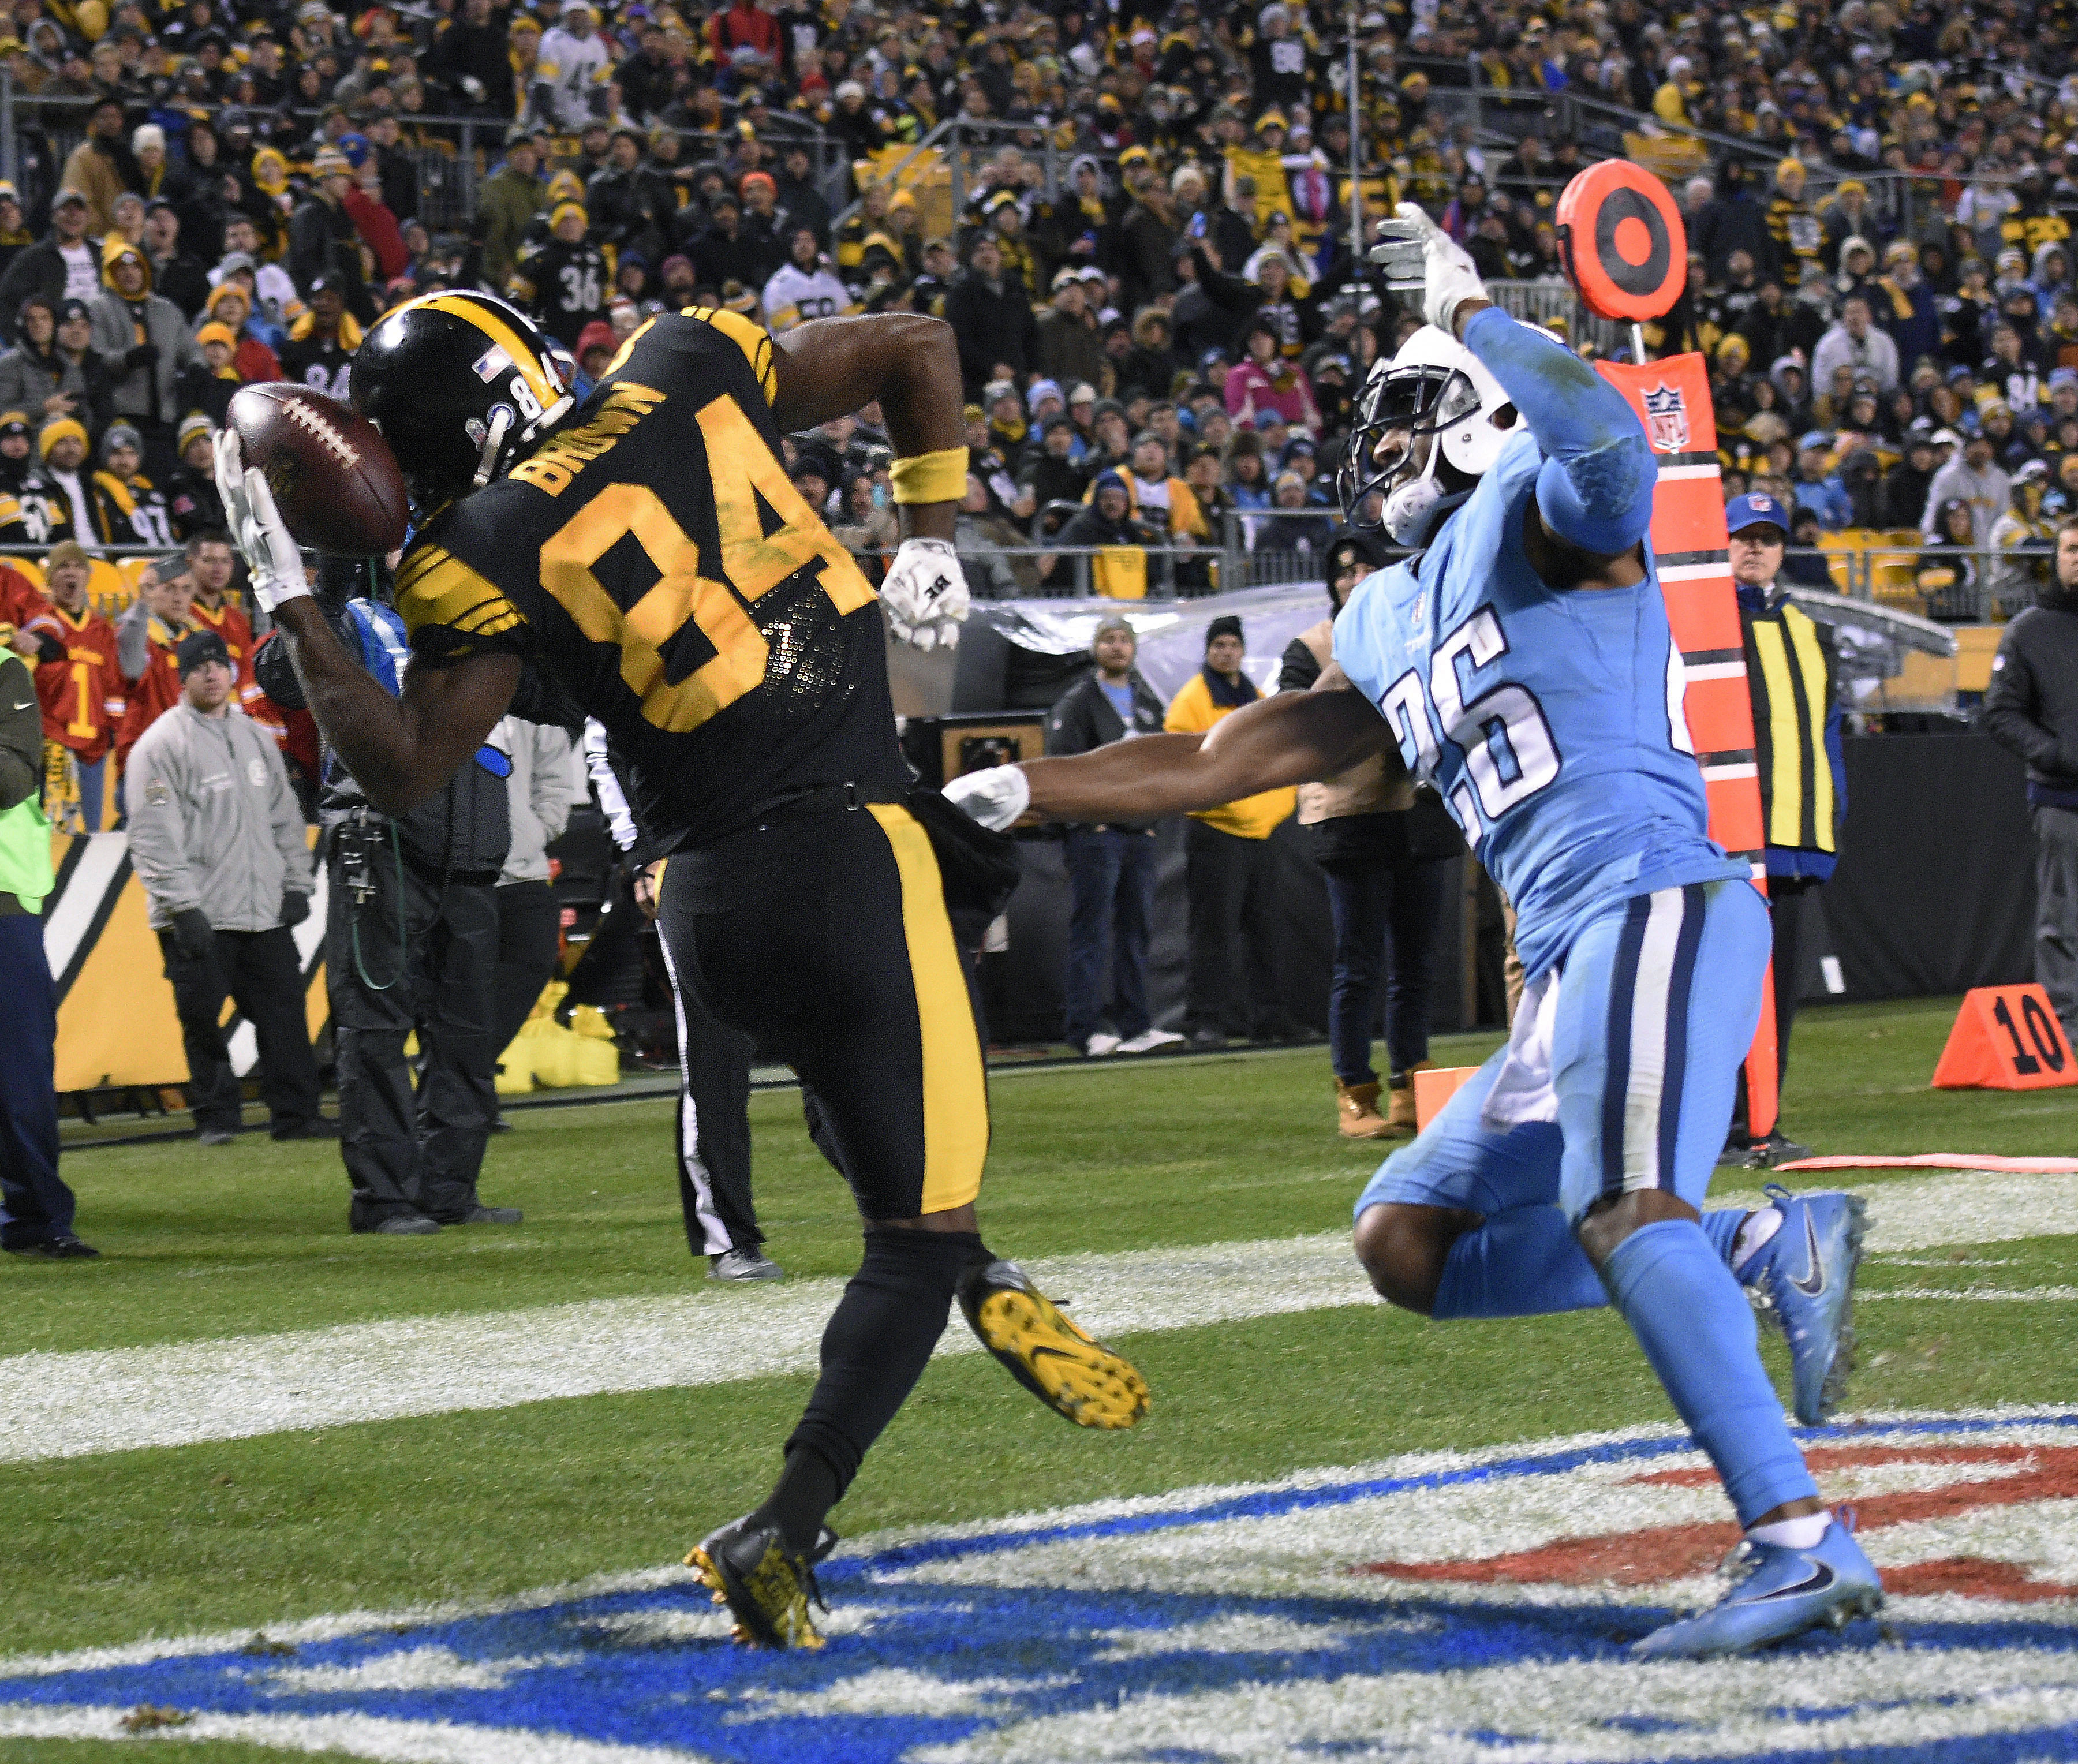 Who's stopping Antonio Brown when he catches balls with his helmet?